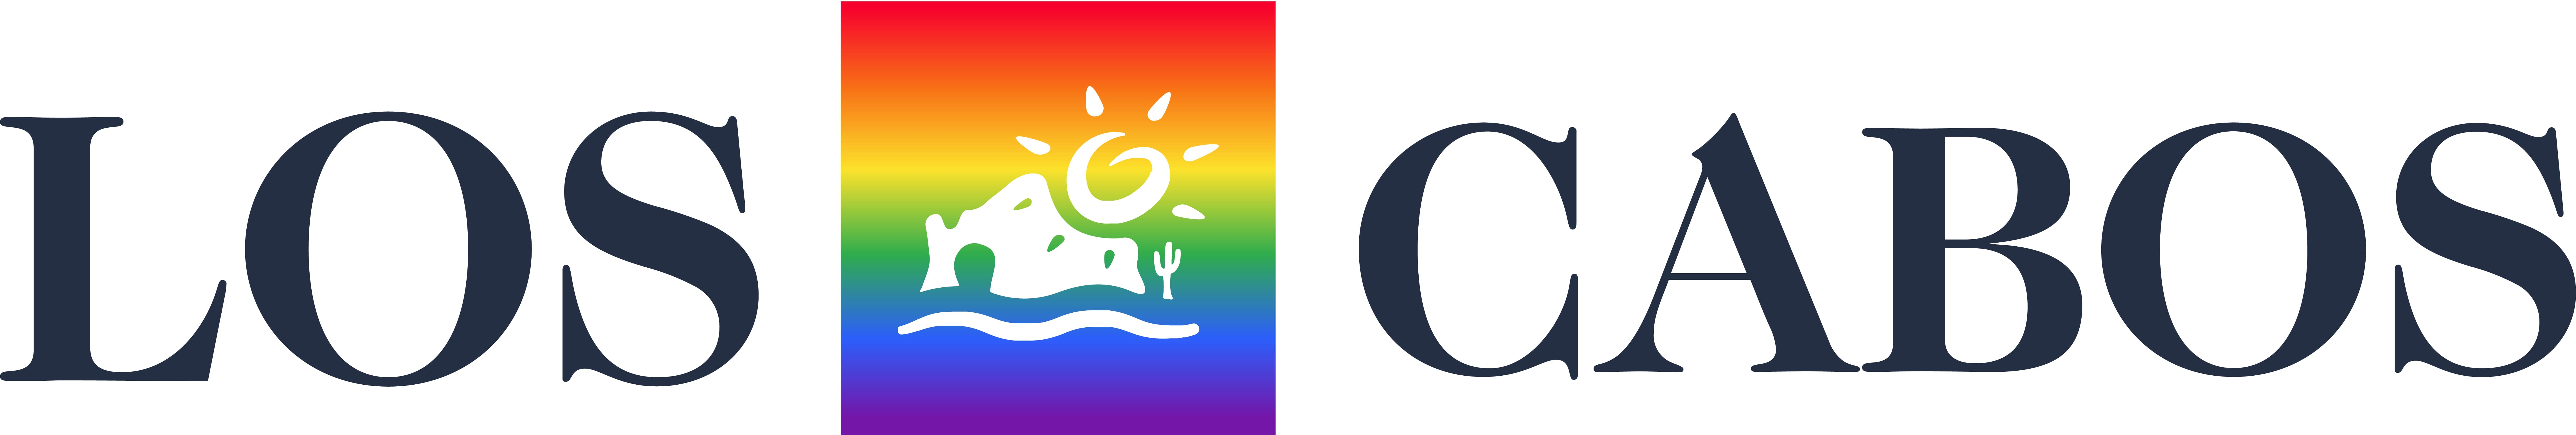 Gay Cabo San Lucas 2021 Travel Guide - Hotels, Bars, & Events